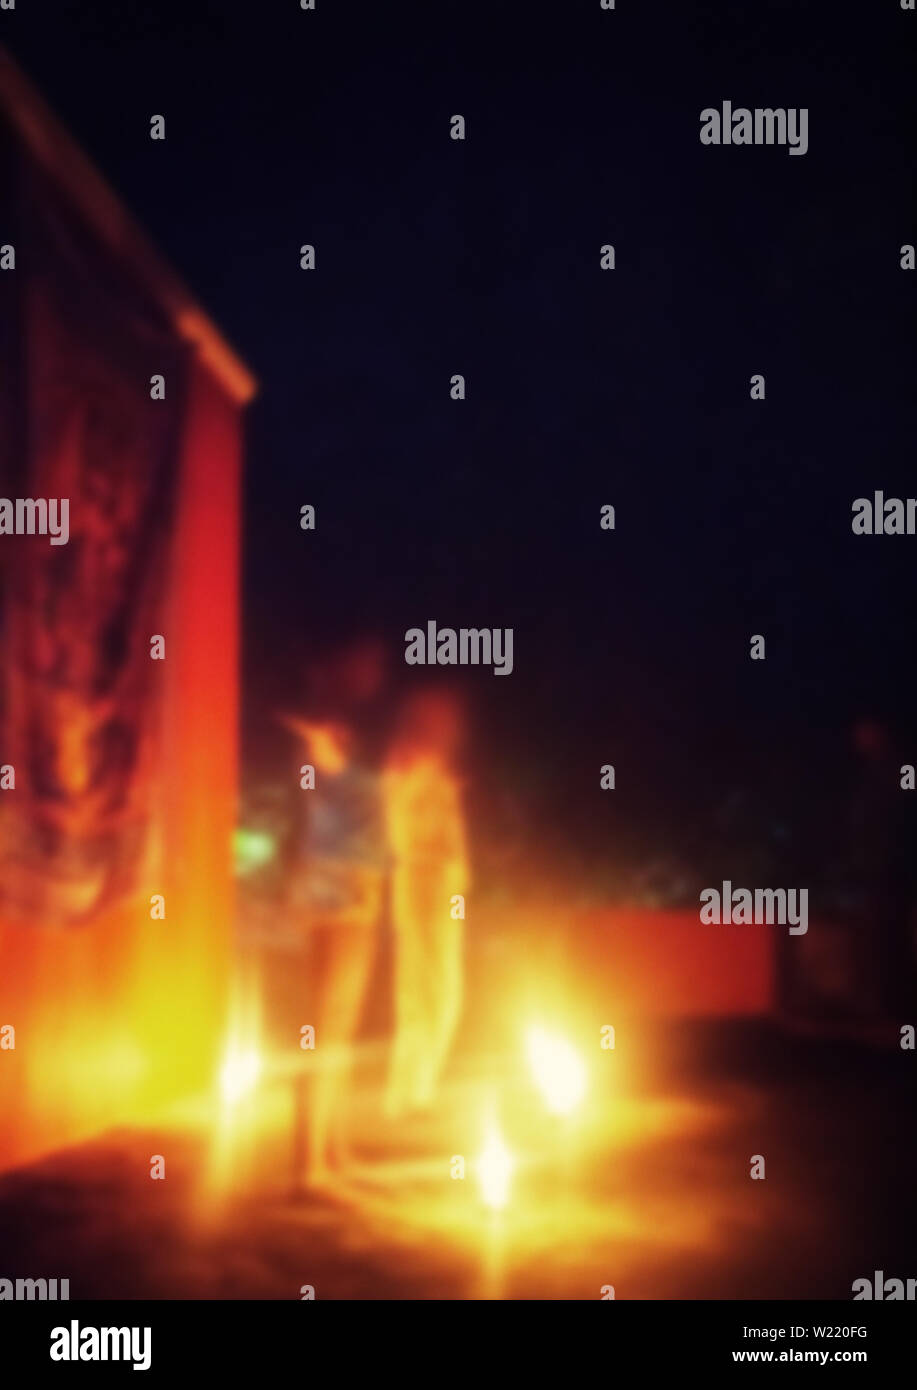 strong blurred, mystical sacred action in the style of yoga and shamans - Stock Image